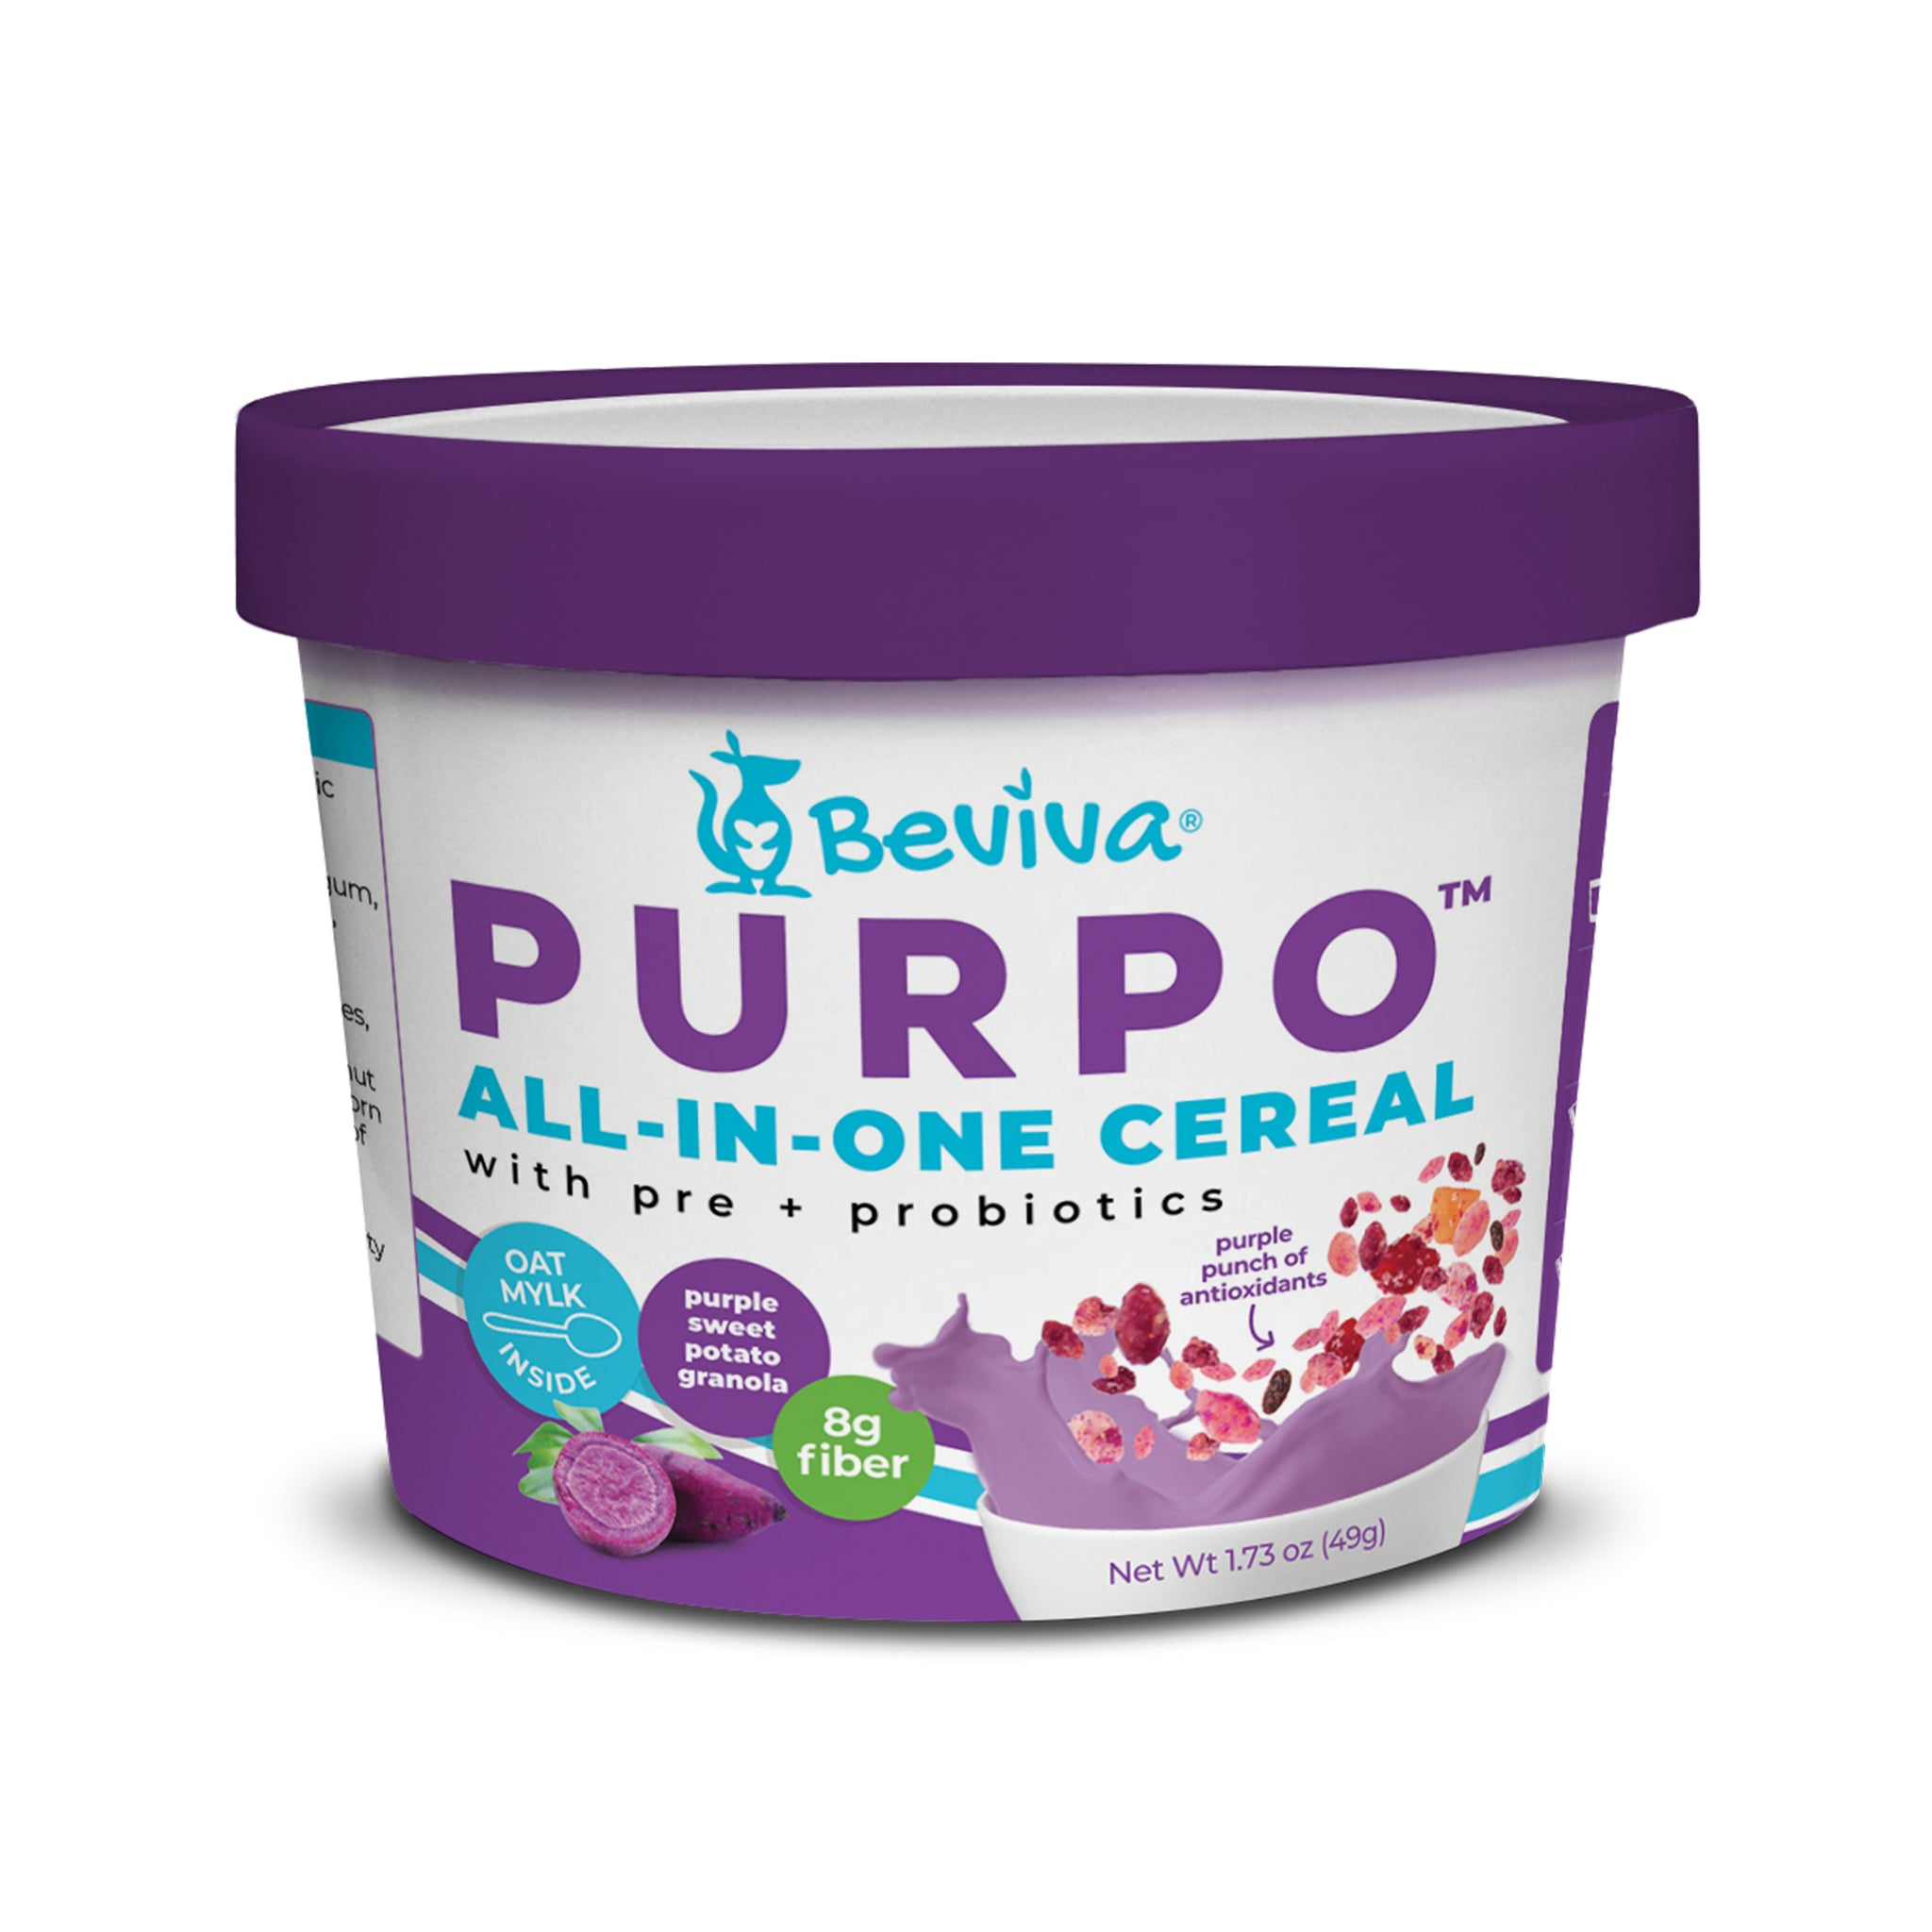 PURPO All-in-One Cereal Cup 1.73 oz - Beviva Foods